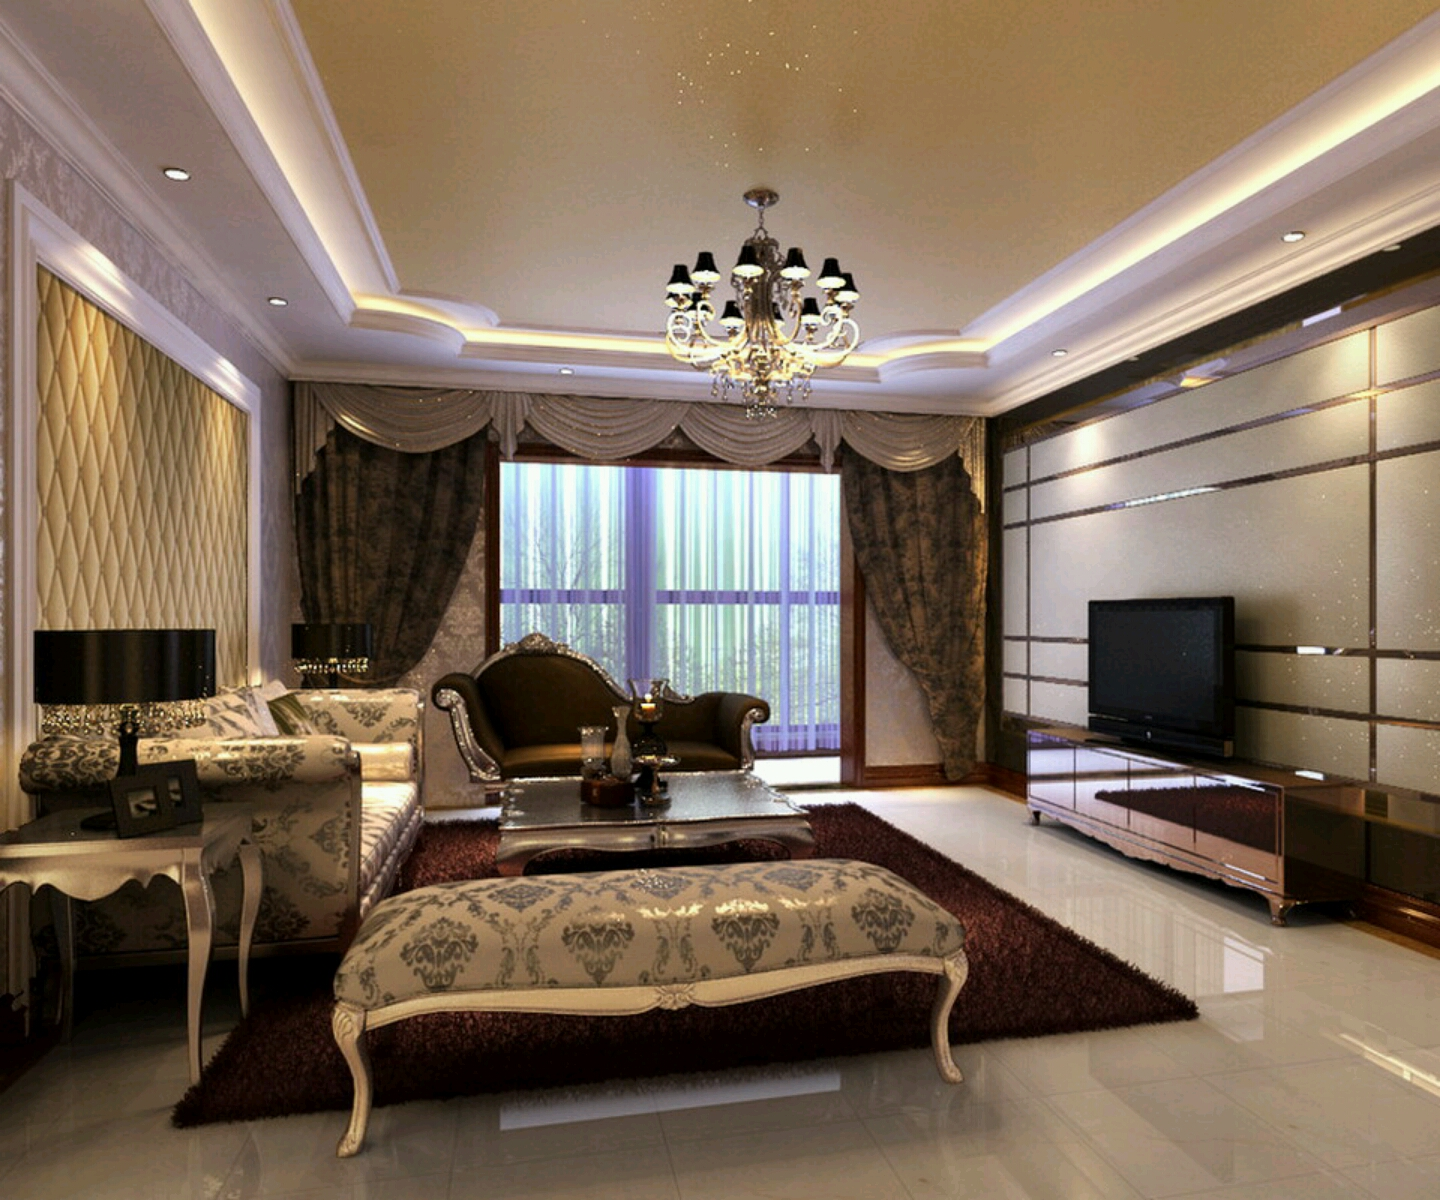 new home designs latest luxury homes interior decoration ForHome Living Room Interior Design Ideas